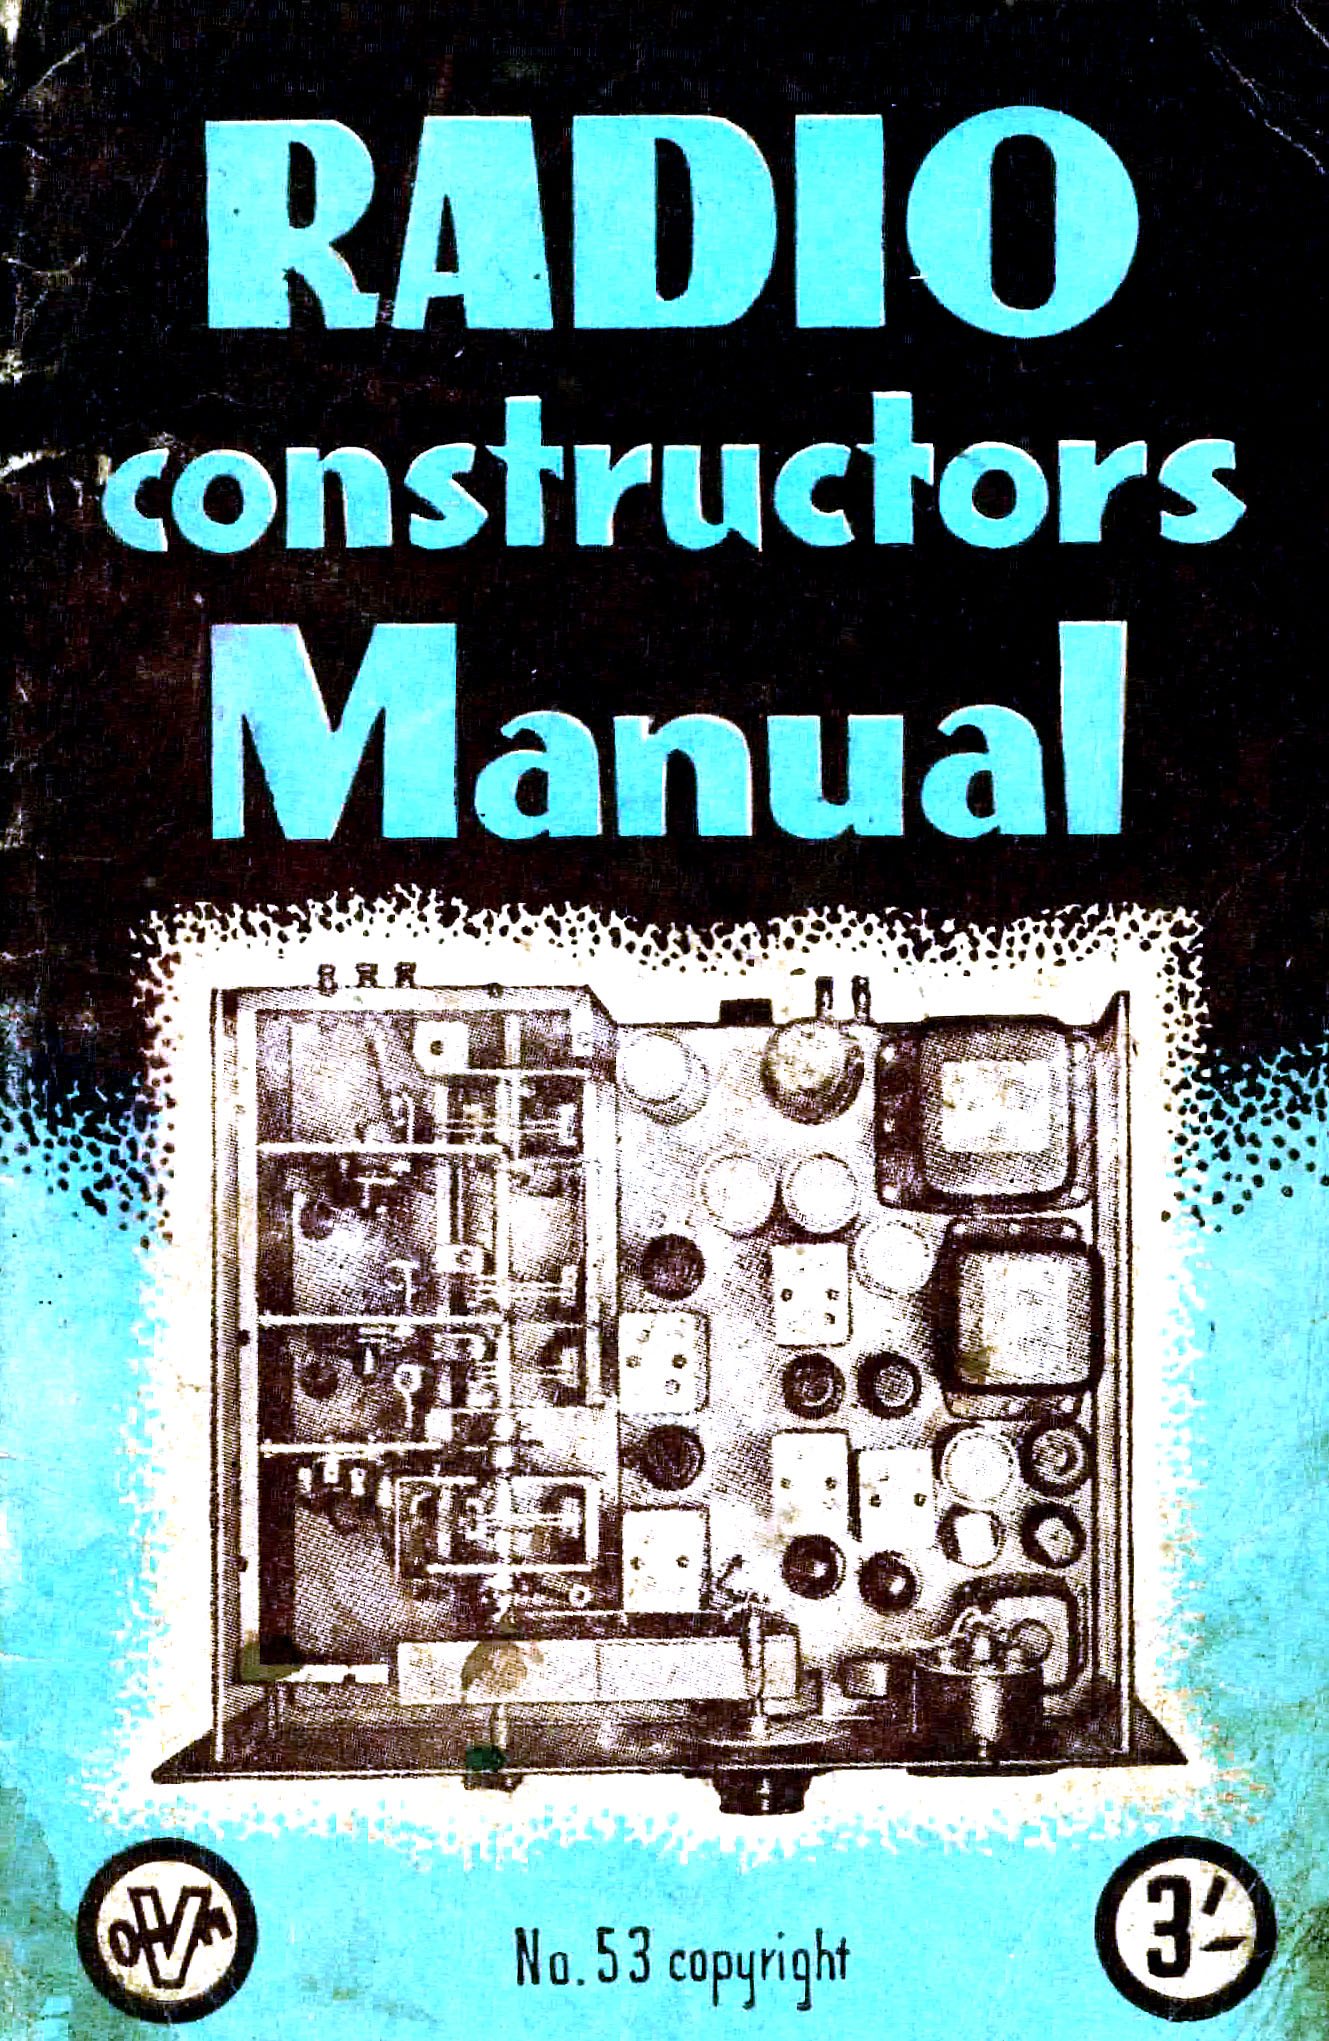 Radio Constructors Manual - George, Lewis